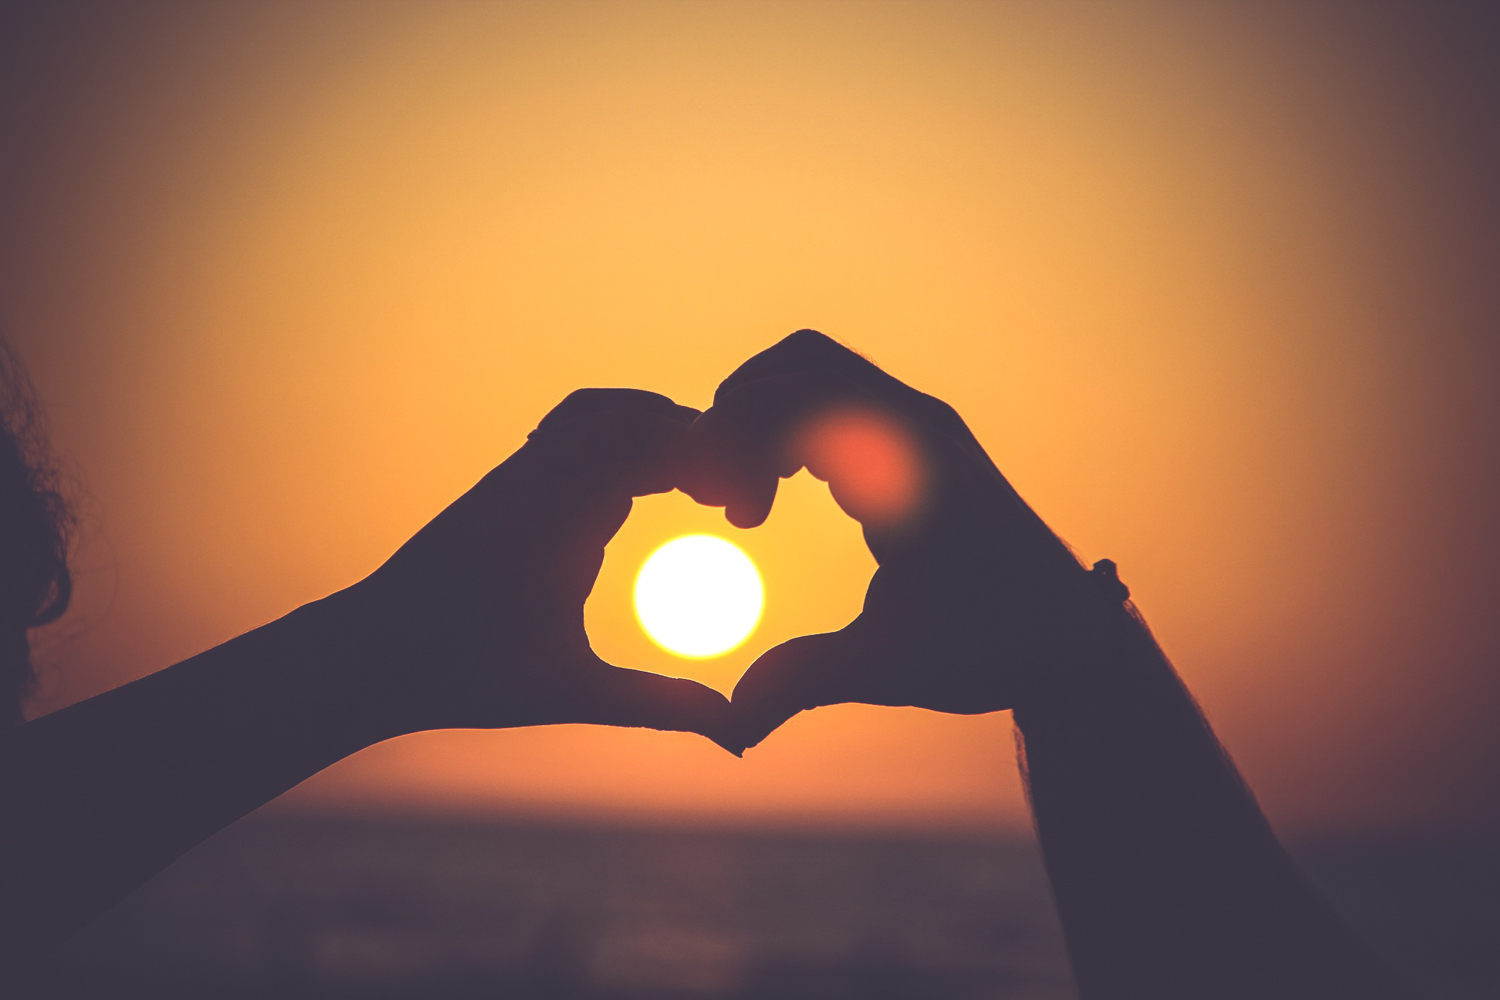 Two hands making a heart shape around a sunset.